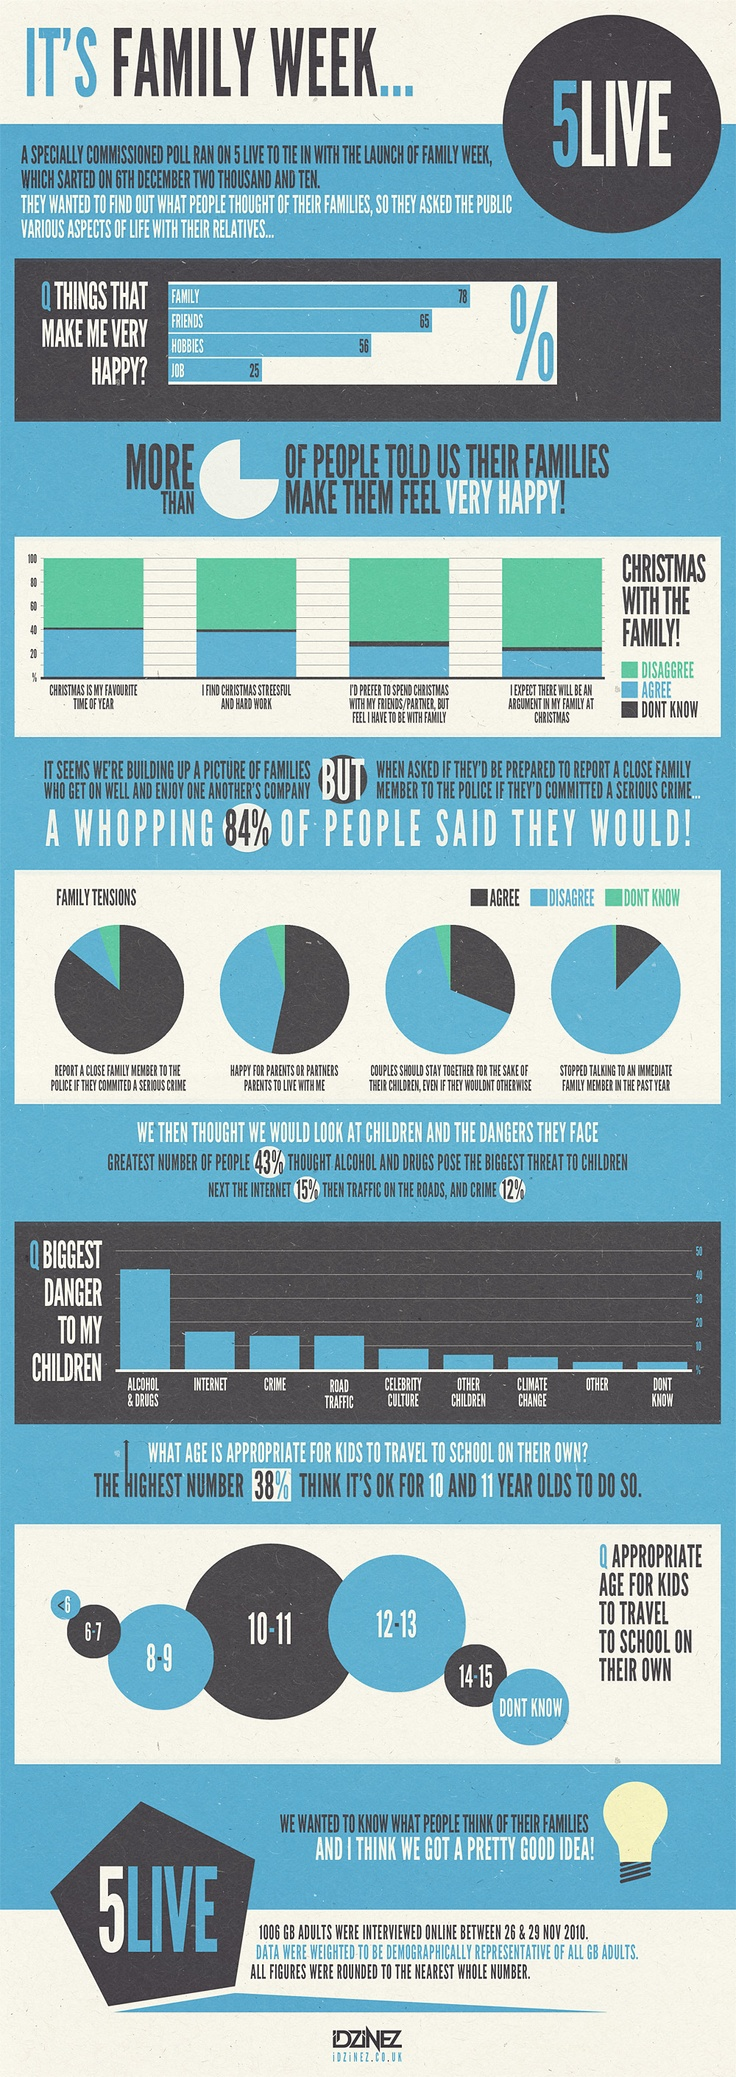 179 best Infographic images on Pinterest | Info graphics, Social ...